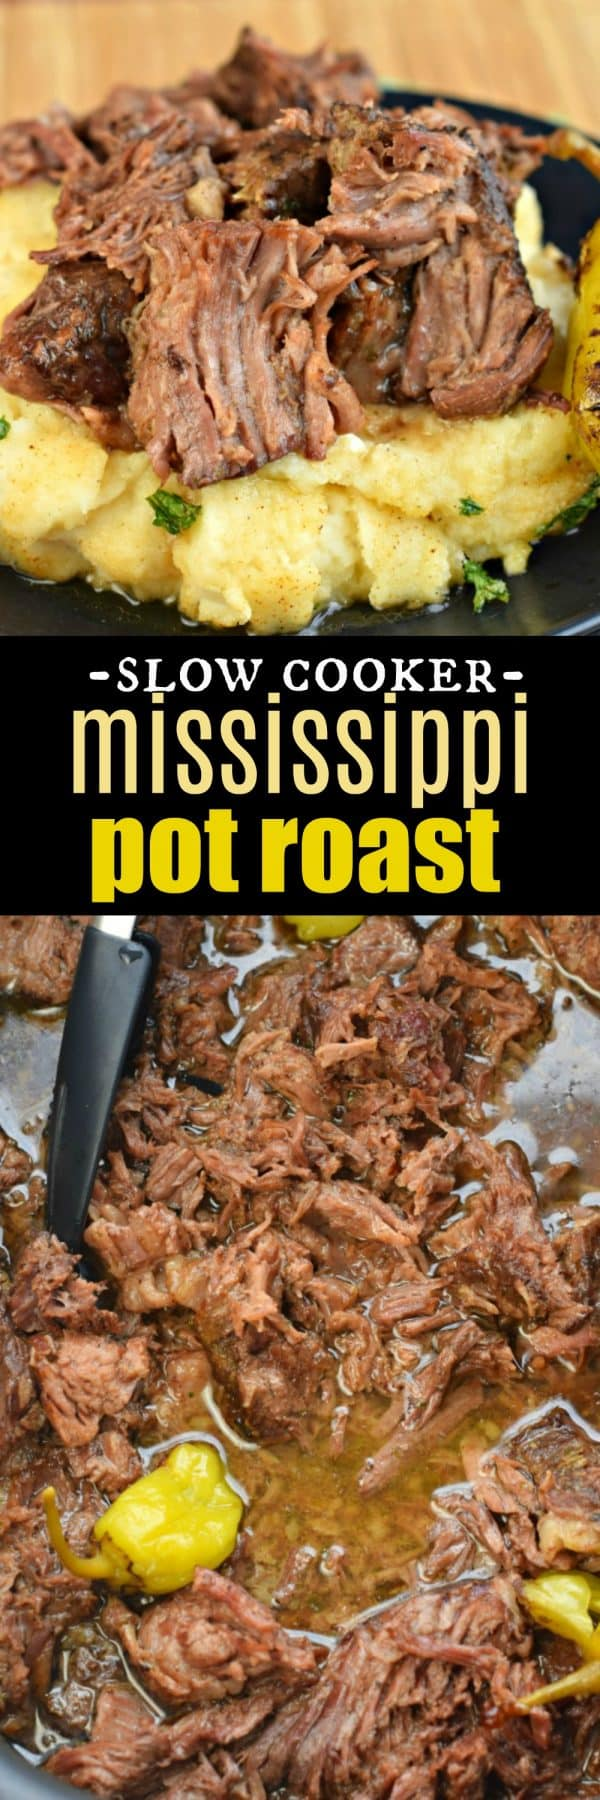 Fork tender, melt in your mouth, Mississippi Pot Roast recipe. A Naturally low-carb dinner idea made in the slow cooker!